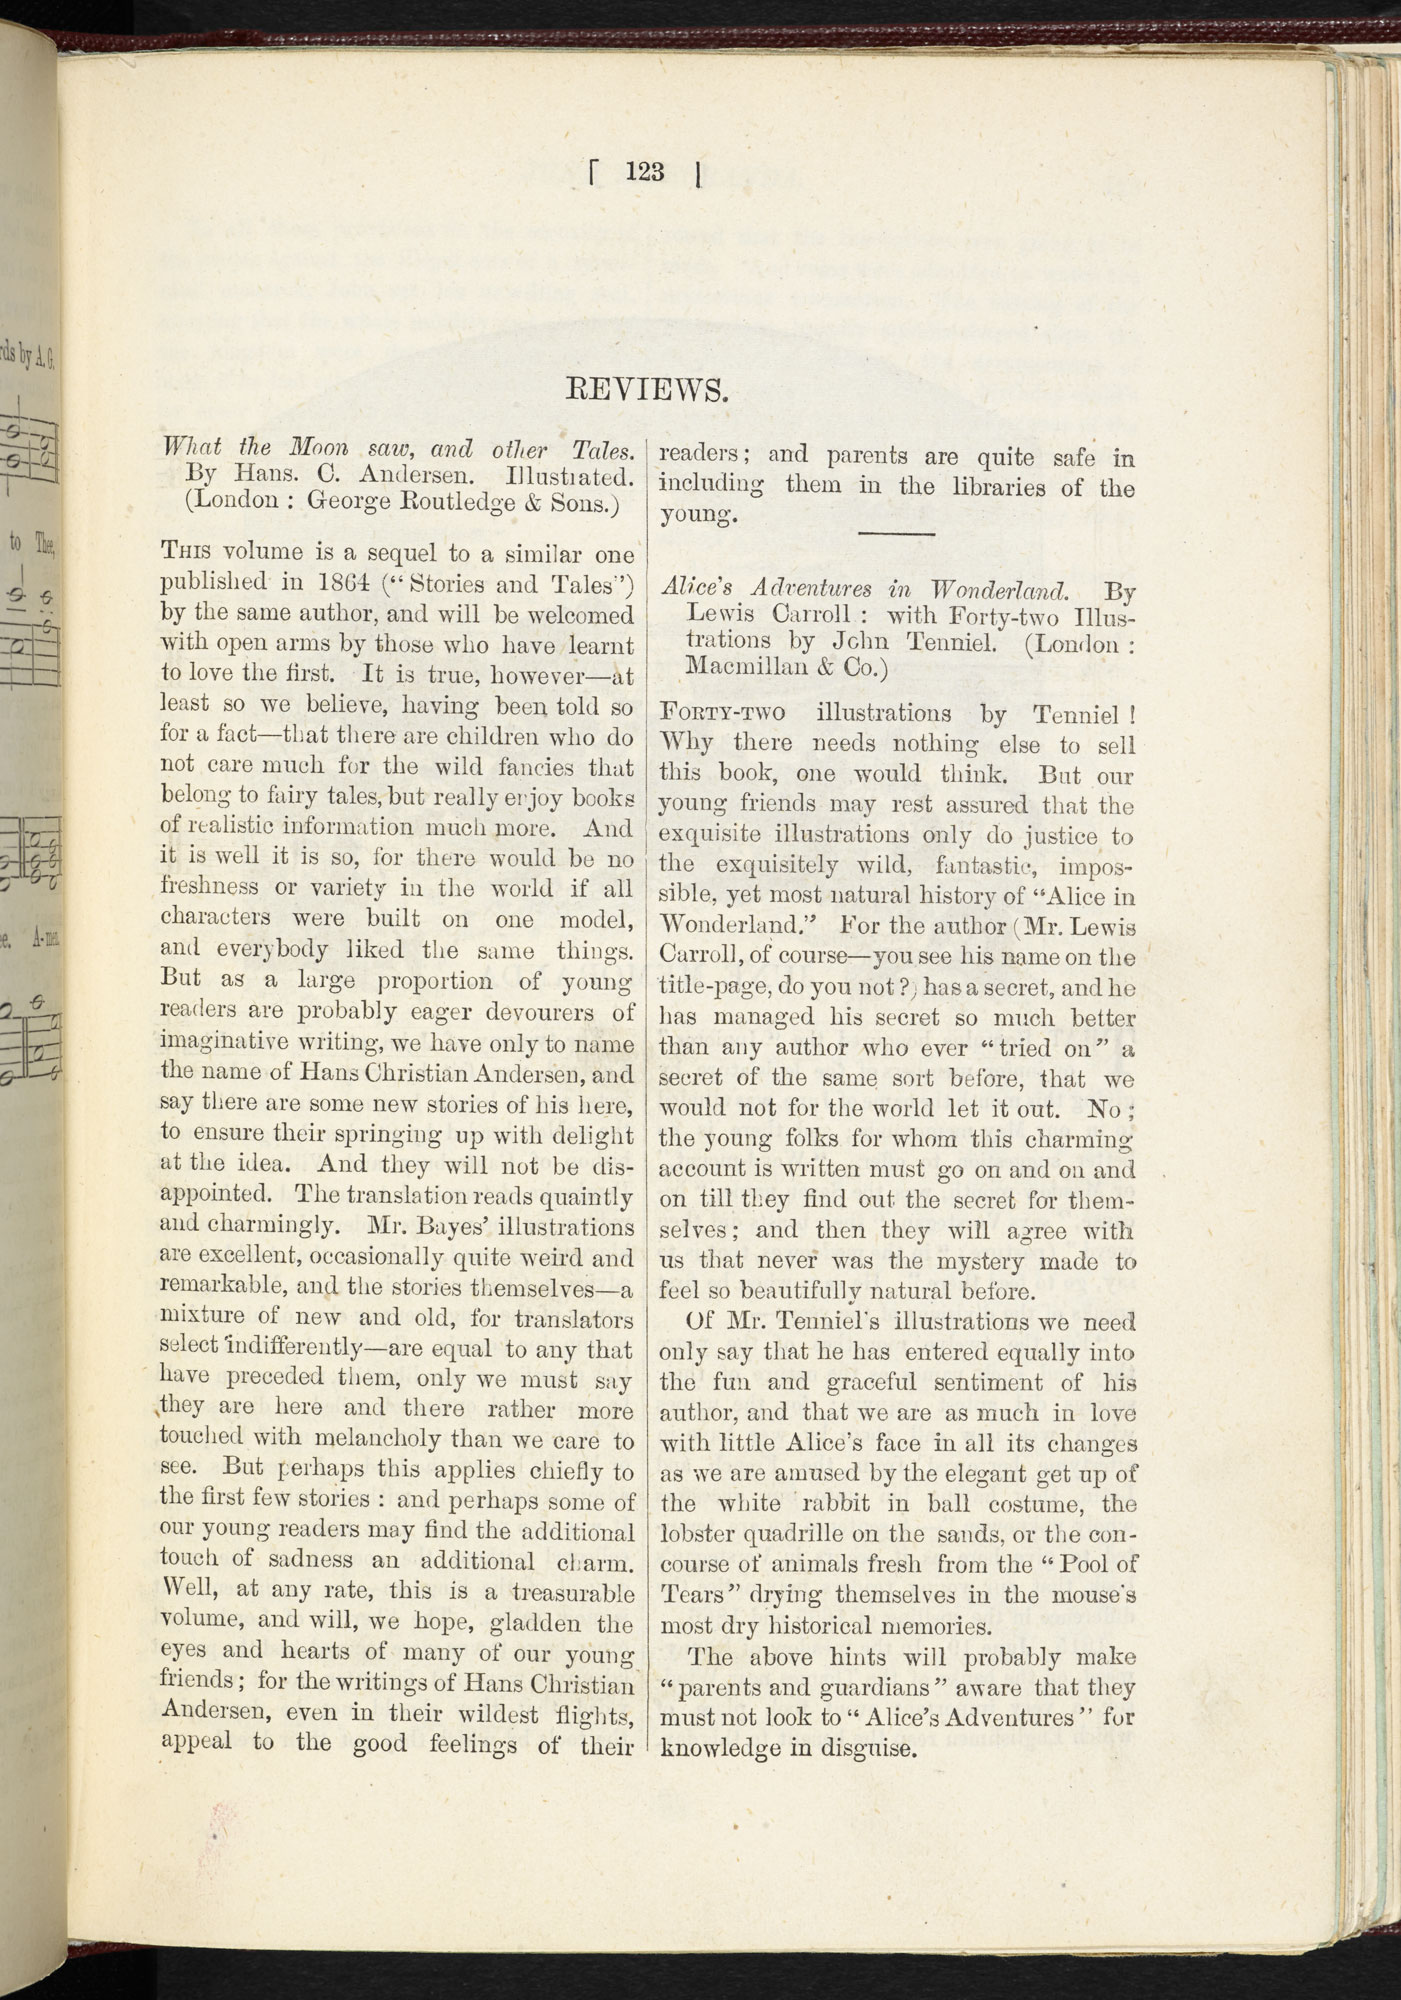 Review of Alice's Adventure's in Wonderland [page: 123]